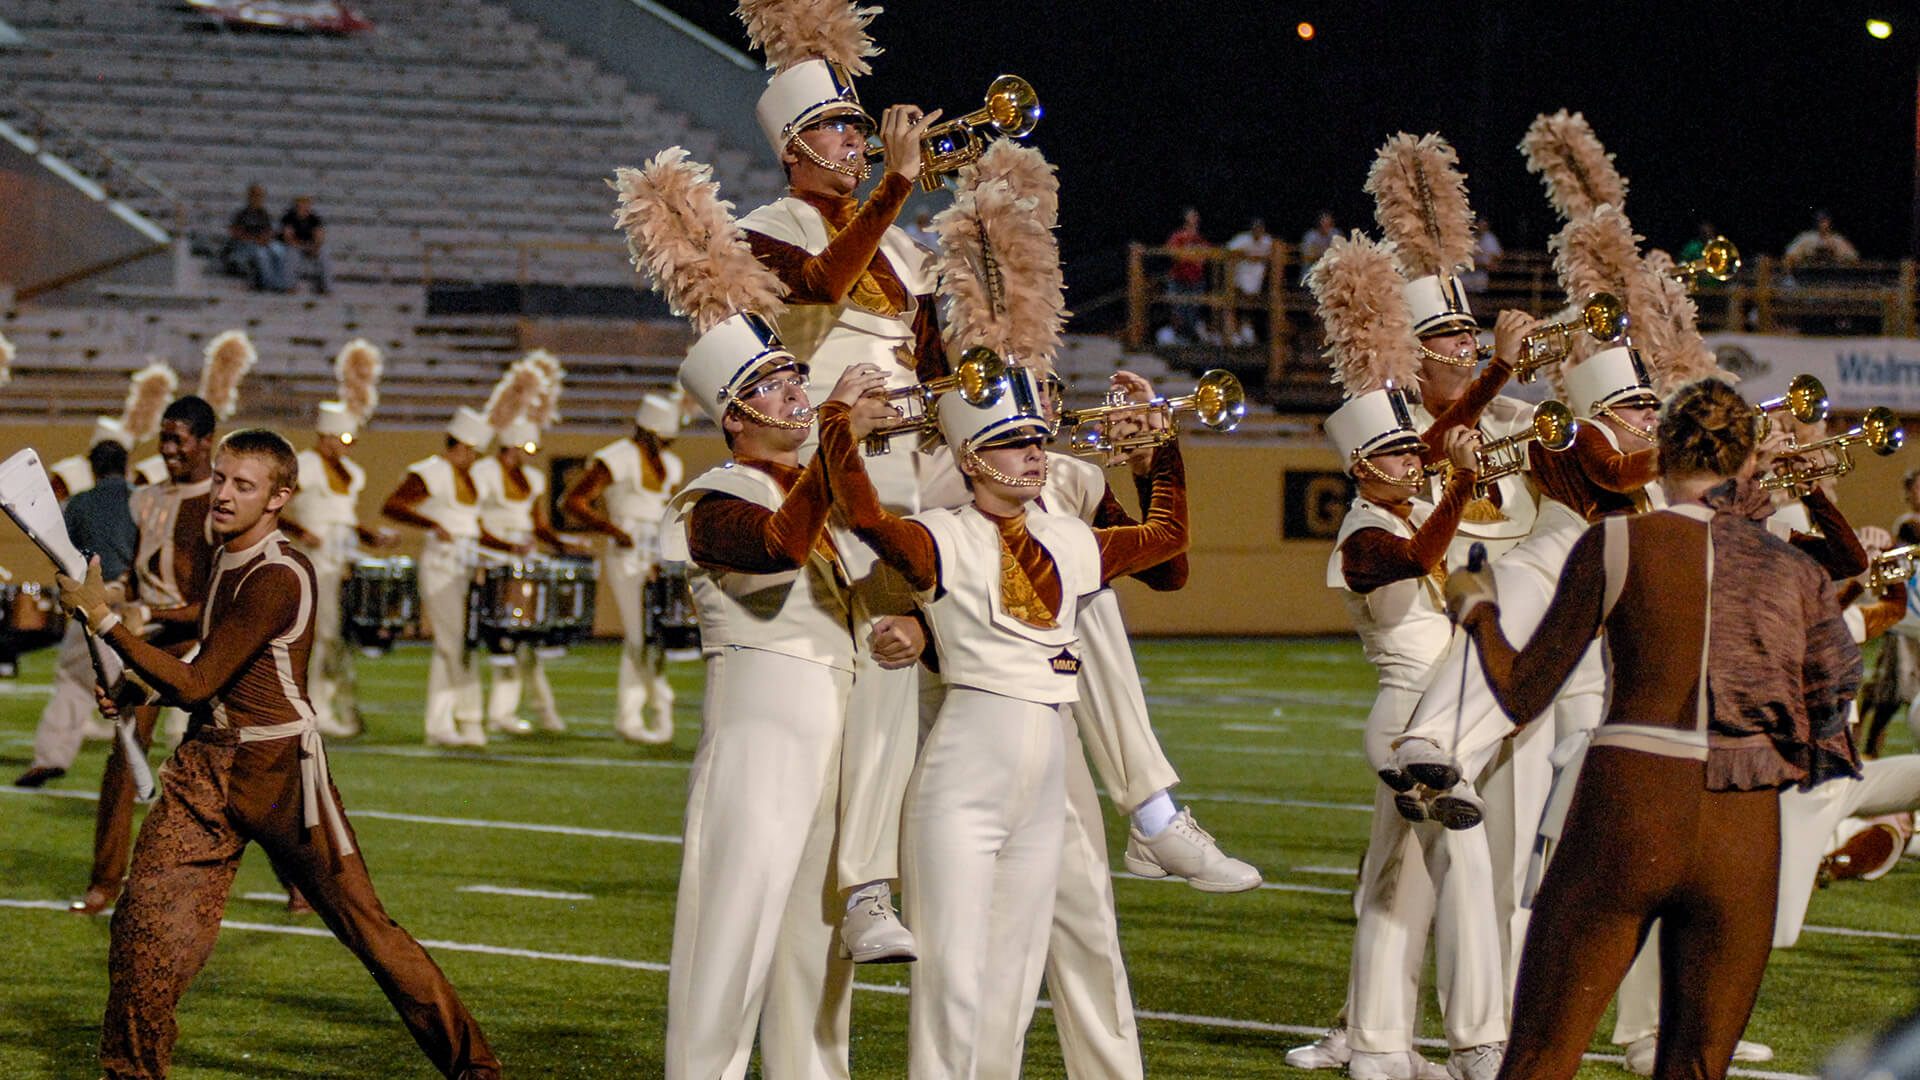 Tenth separates leaders as Crown conquers Kalamazoo